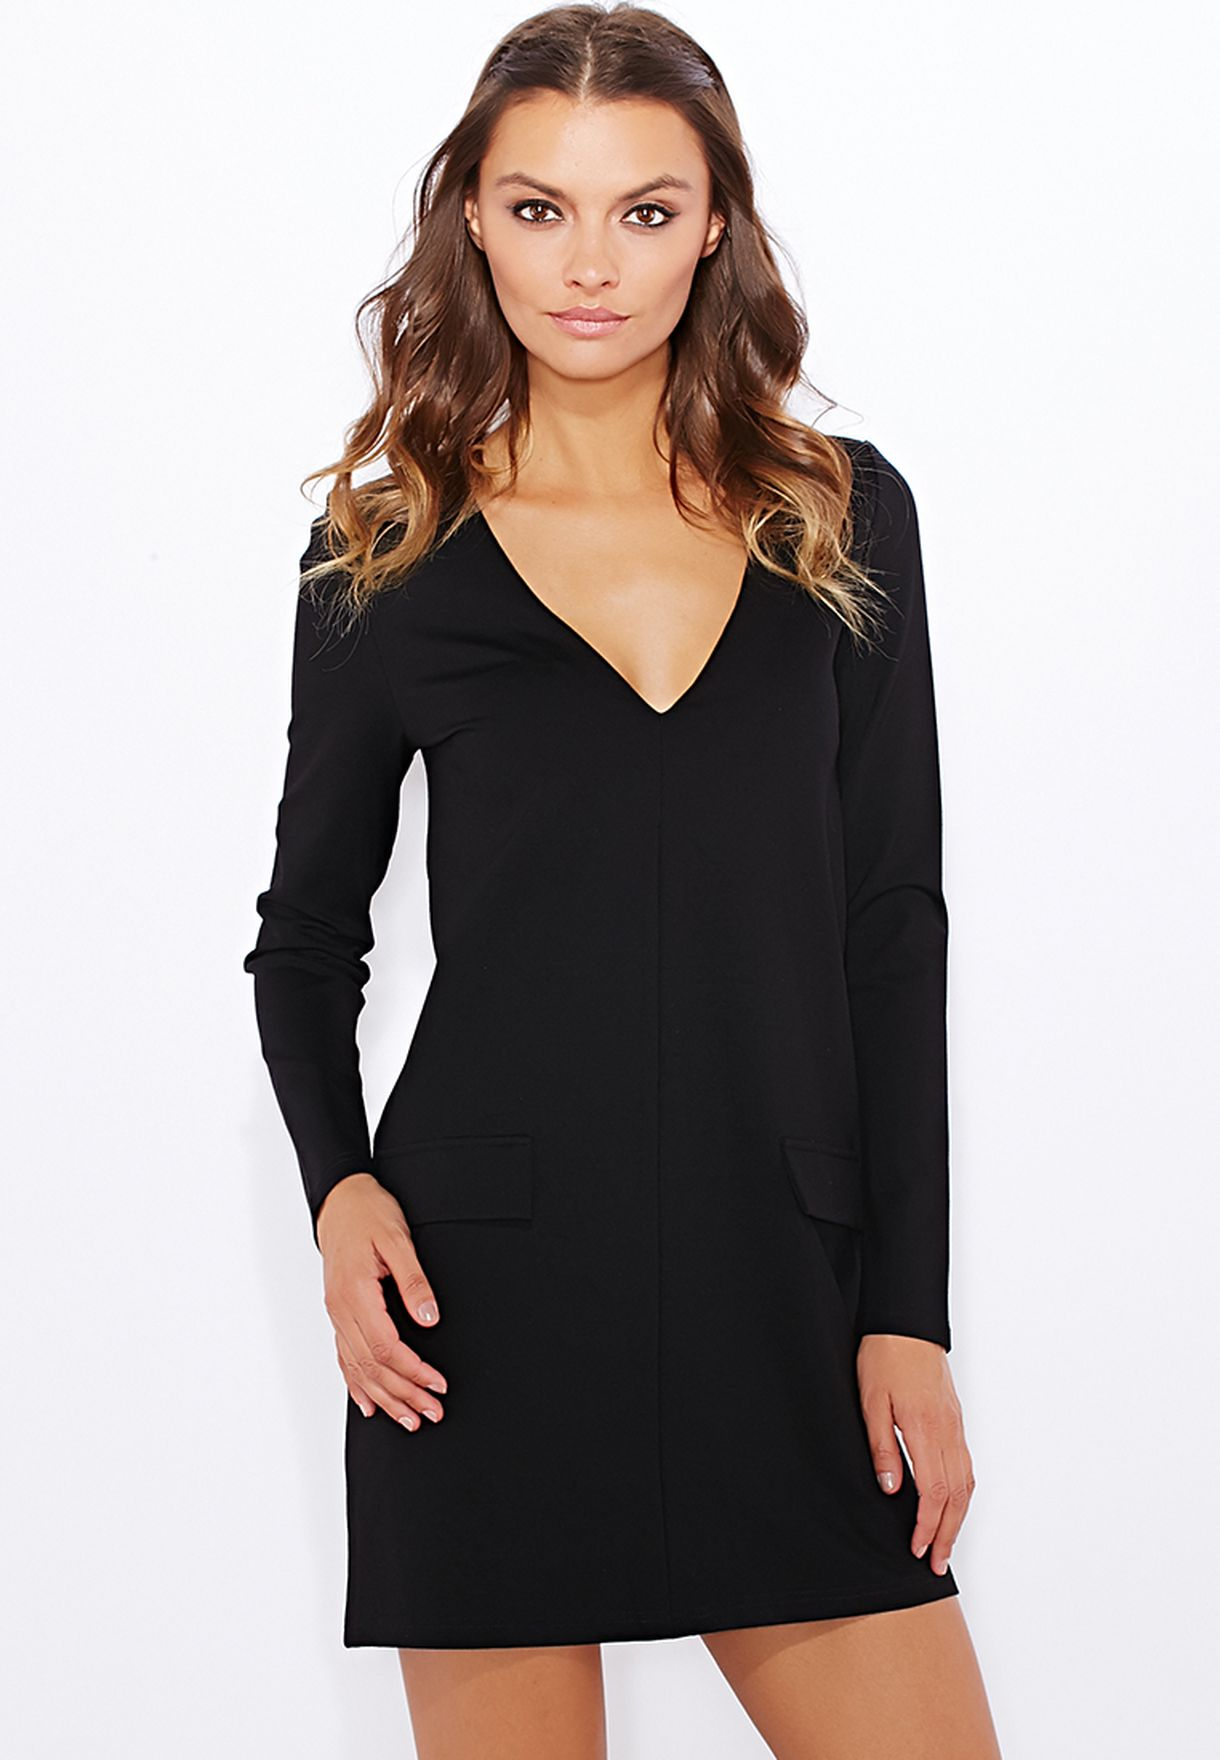 Shop Missguided black Plunge Neck Dress for Women in Kuwait - MI669AT99HMA 8cf548e366